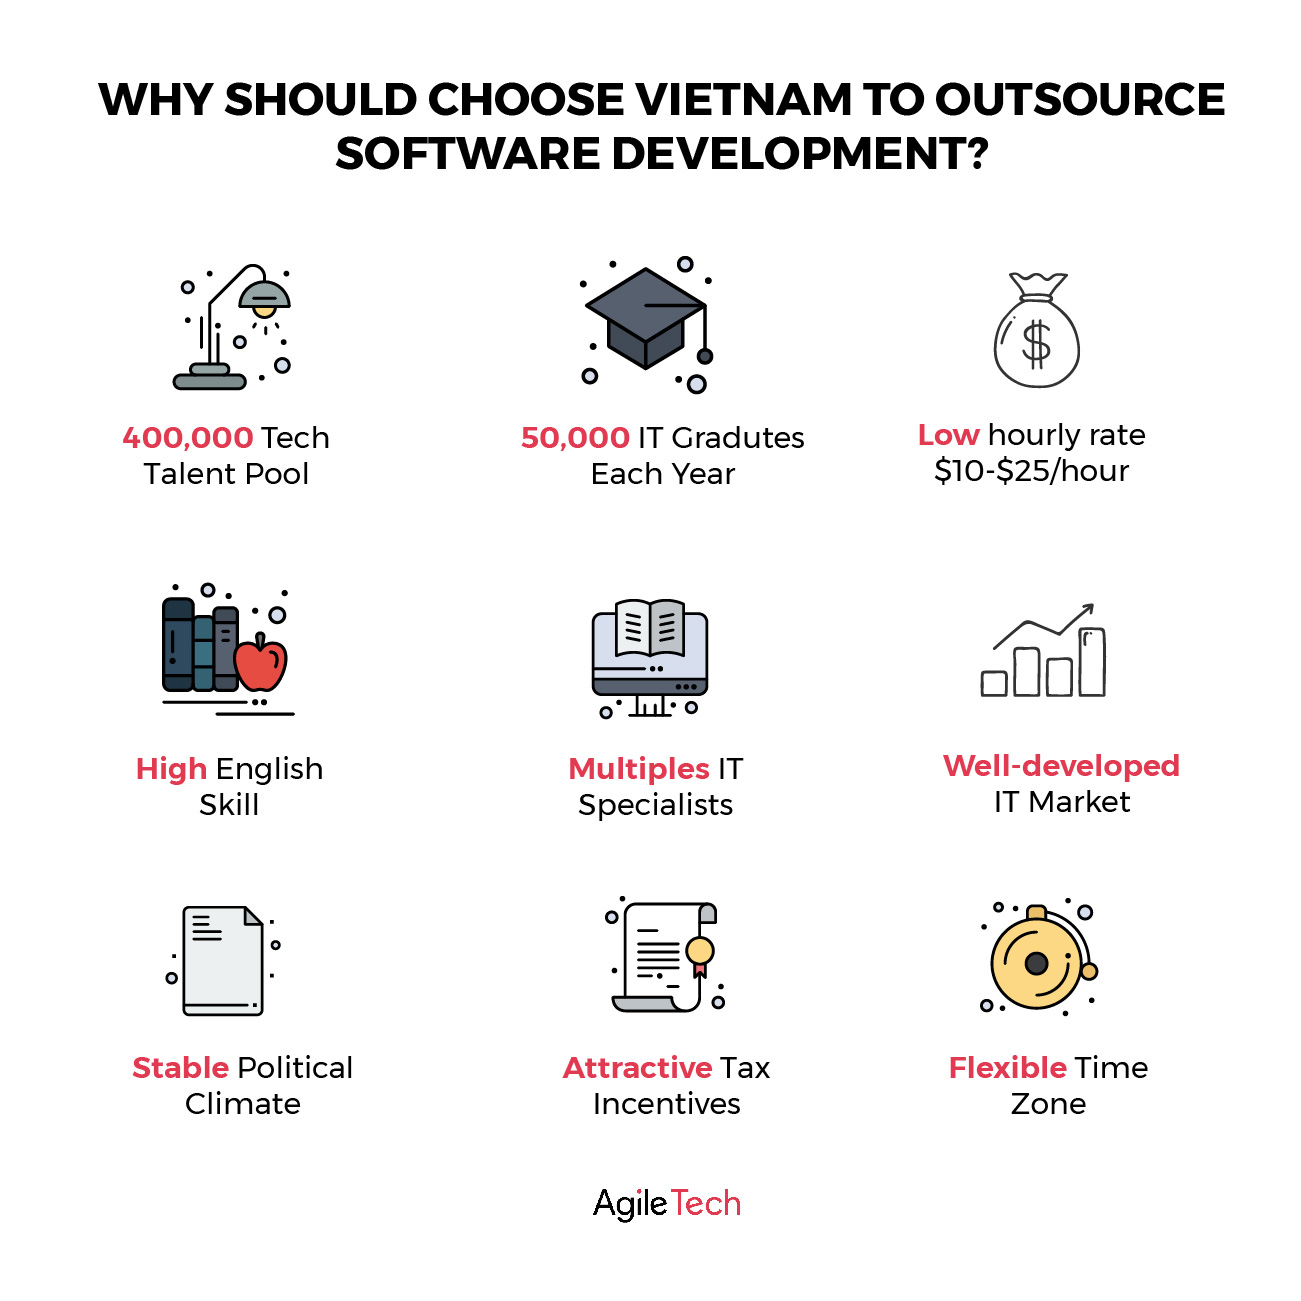 offshore software development why should choose vietnam to outsource software development agiletech